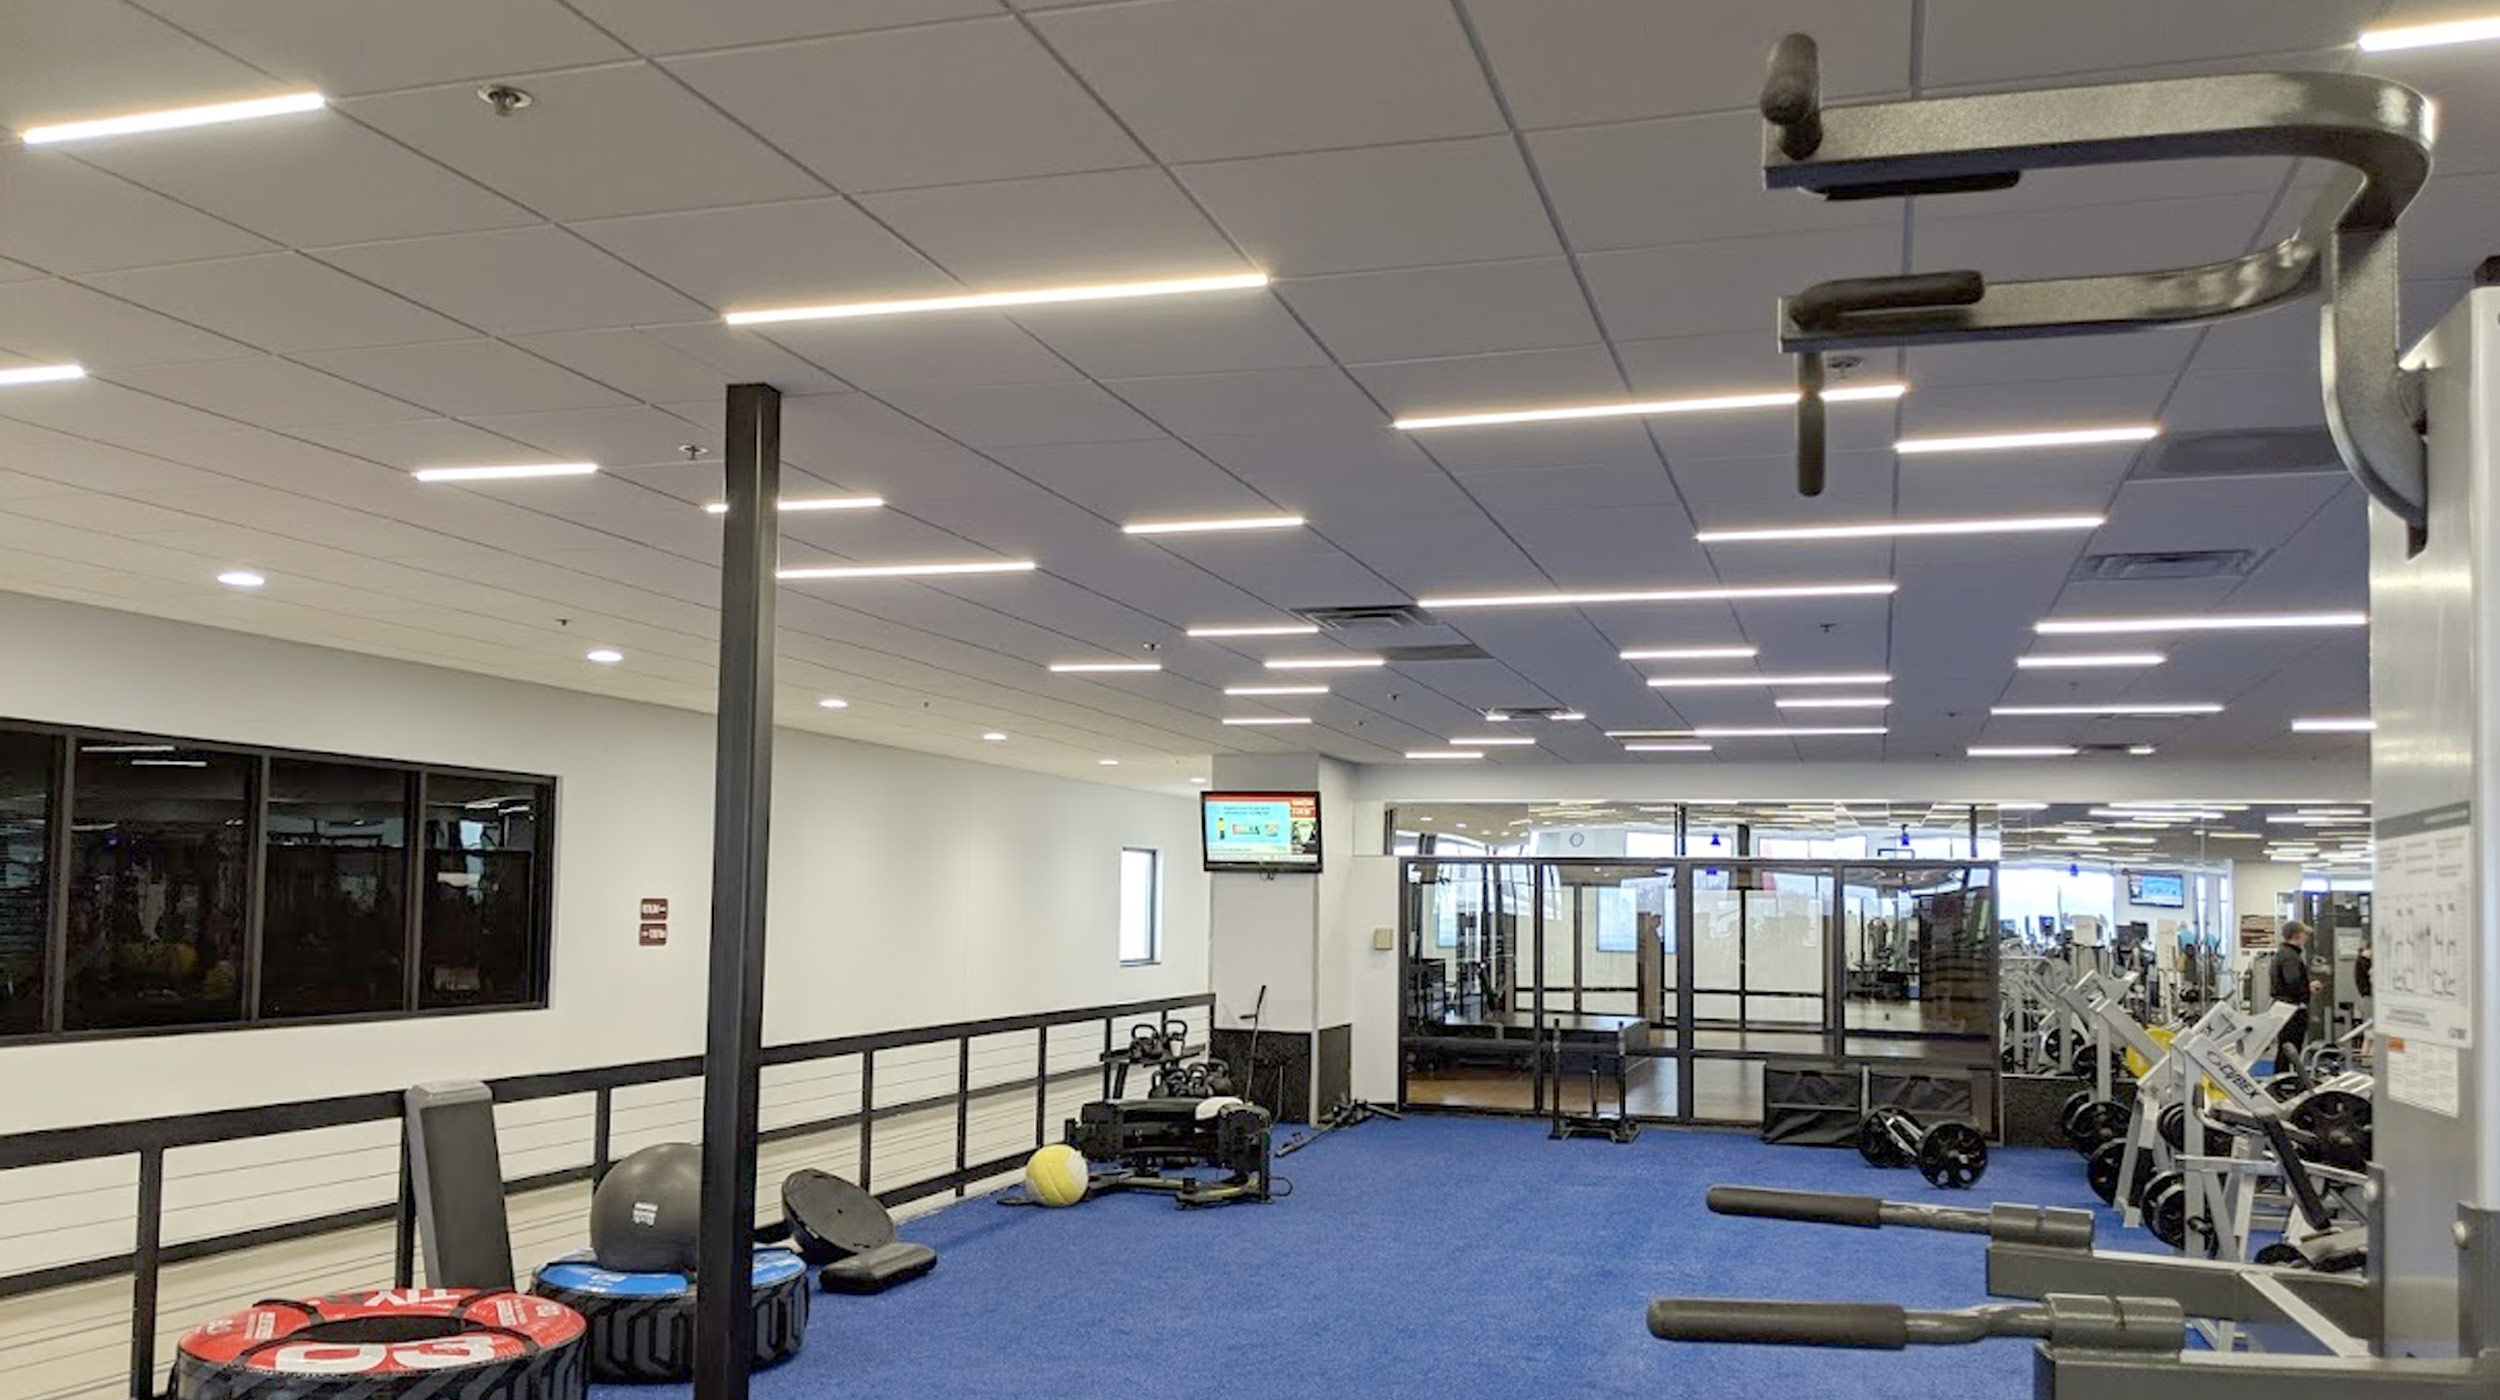 Airelight™ Linear SC 0.5 Directly Attached to T-Bar Grid Ceiling